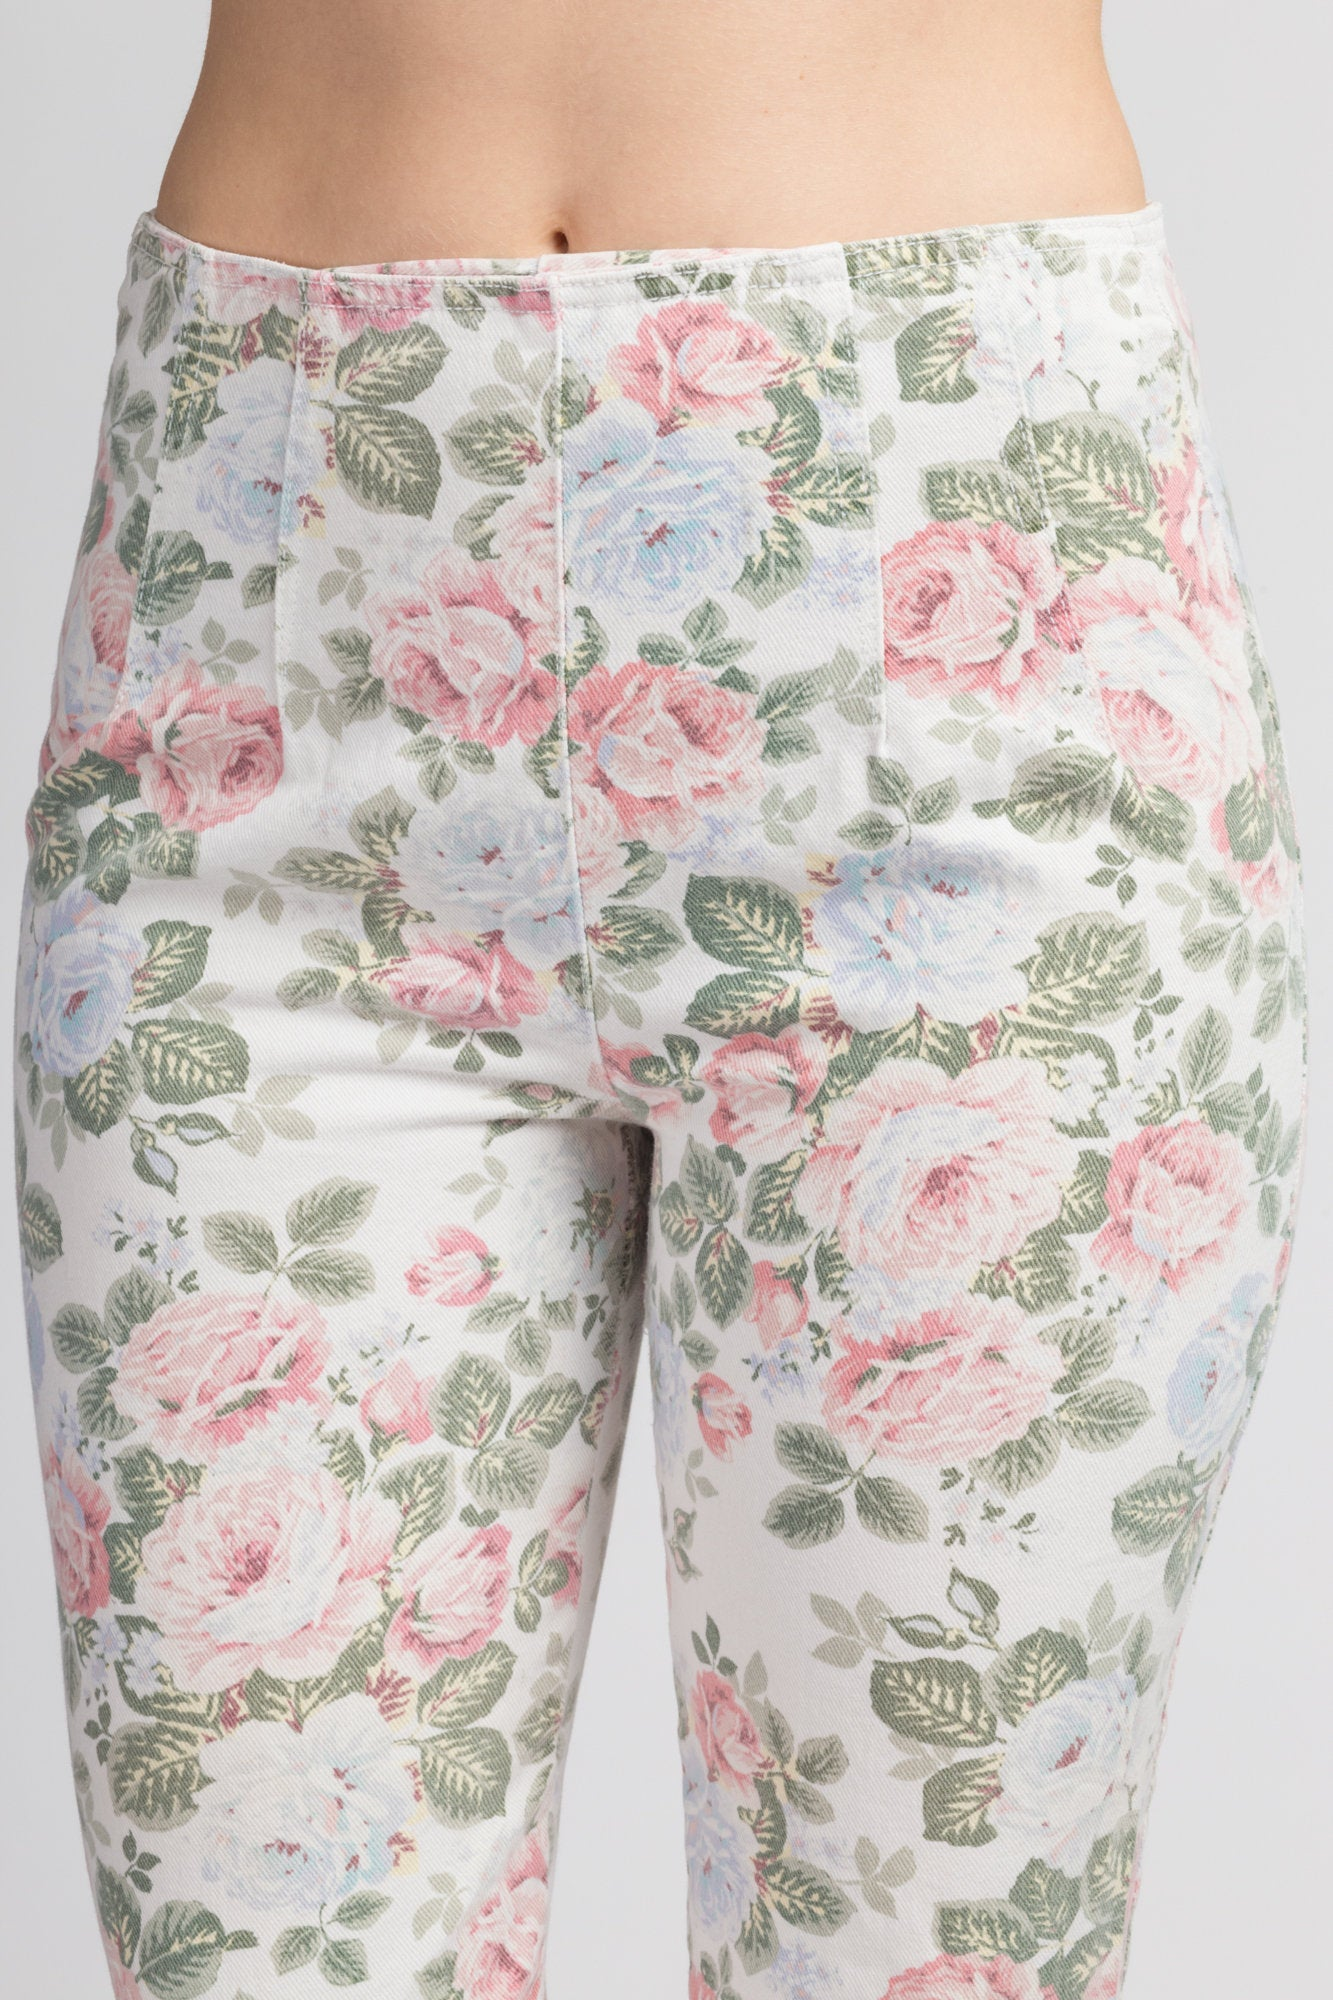 90s White Cropped Floral Jeans - Extra Small